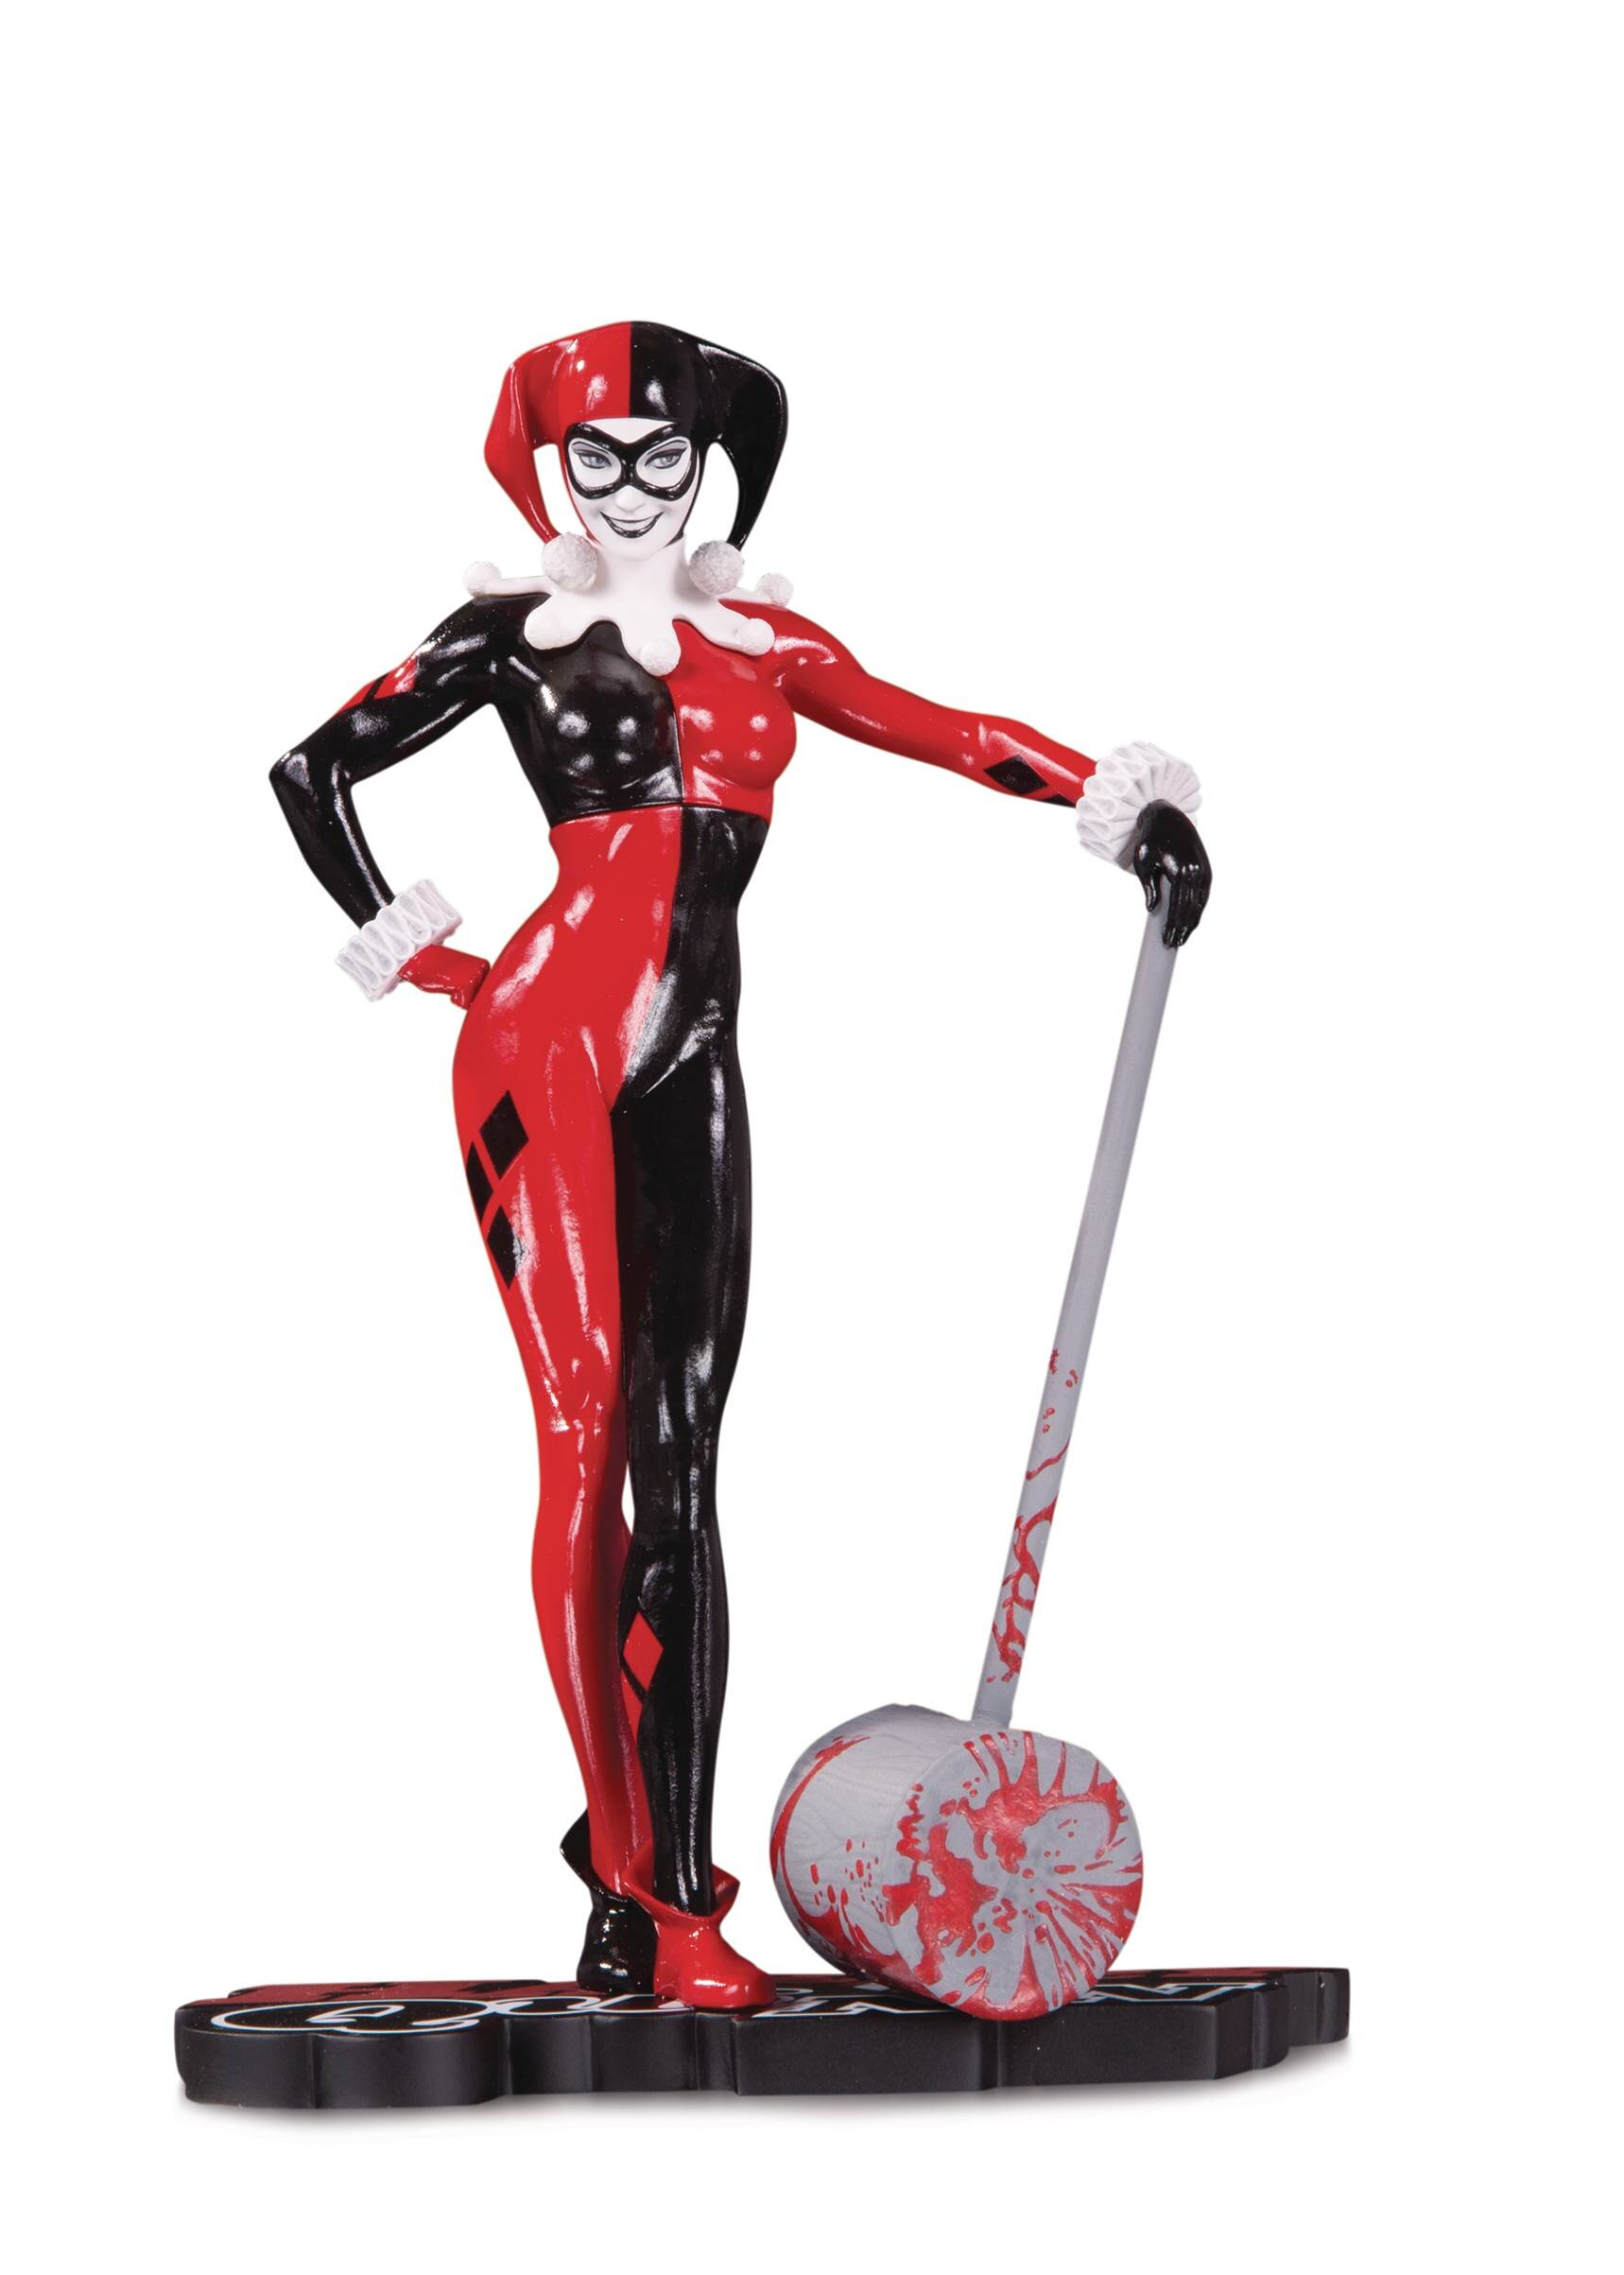 HARLEY QUINN RED WHITE AND BLACK STATUE BY ADAM HUGHES.jpg